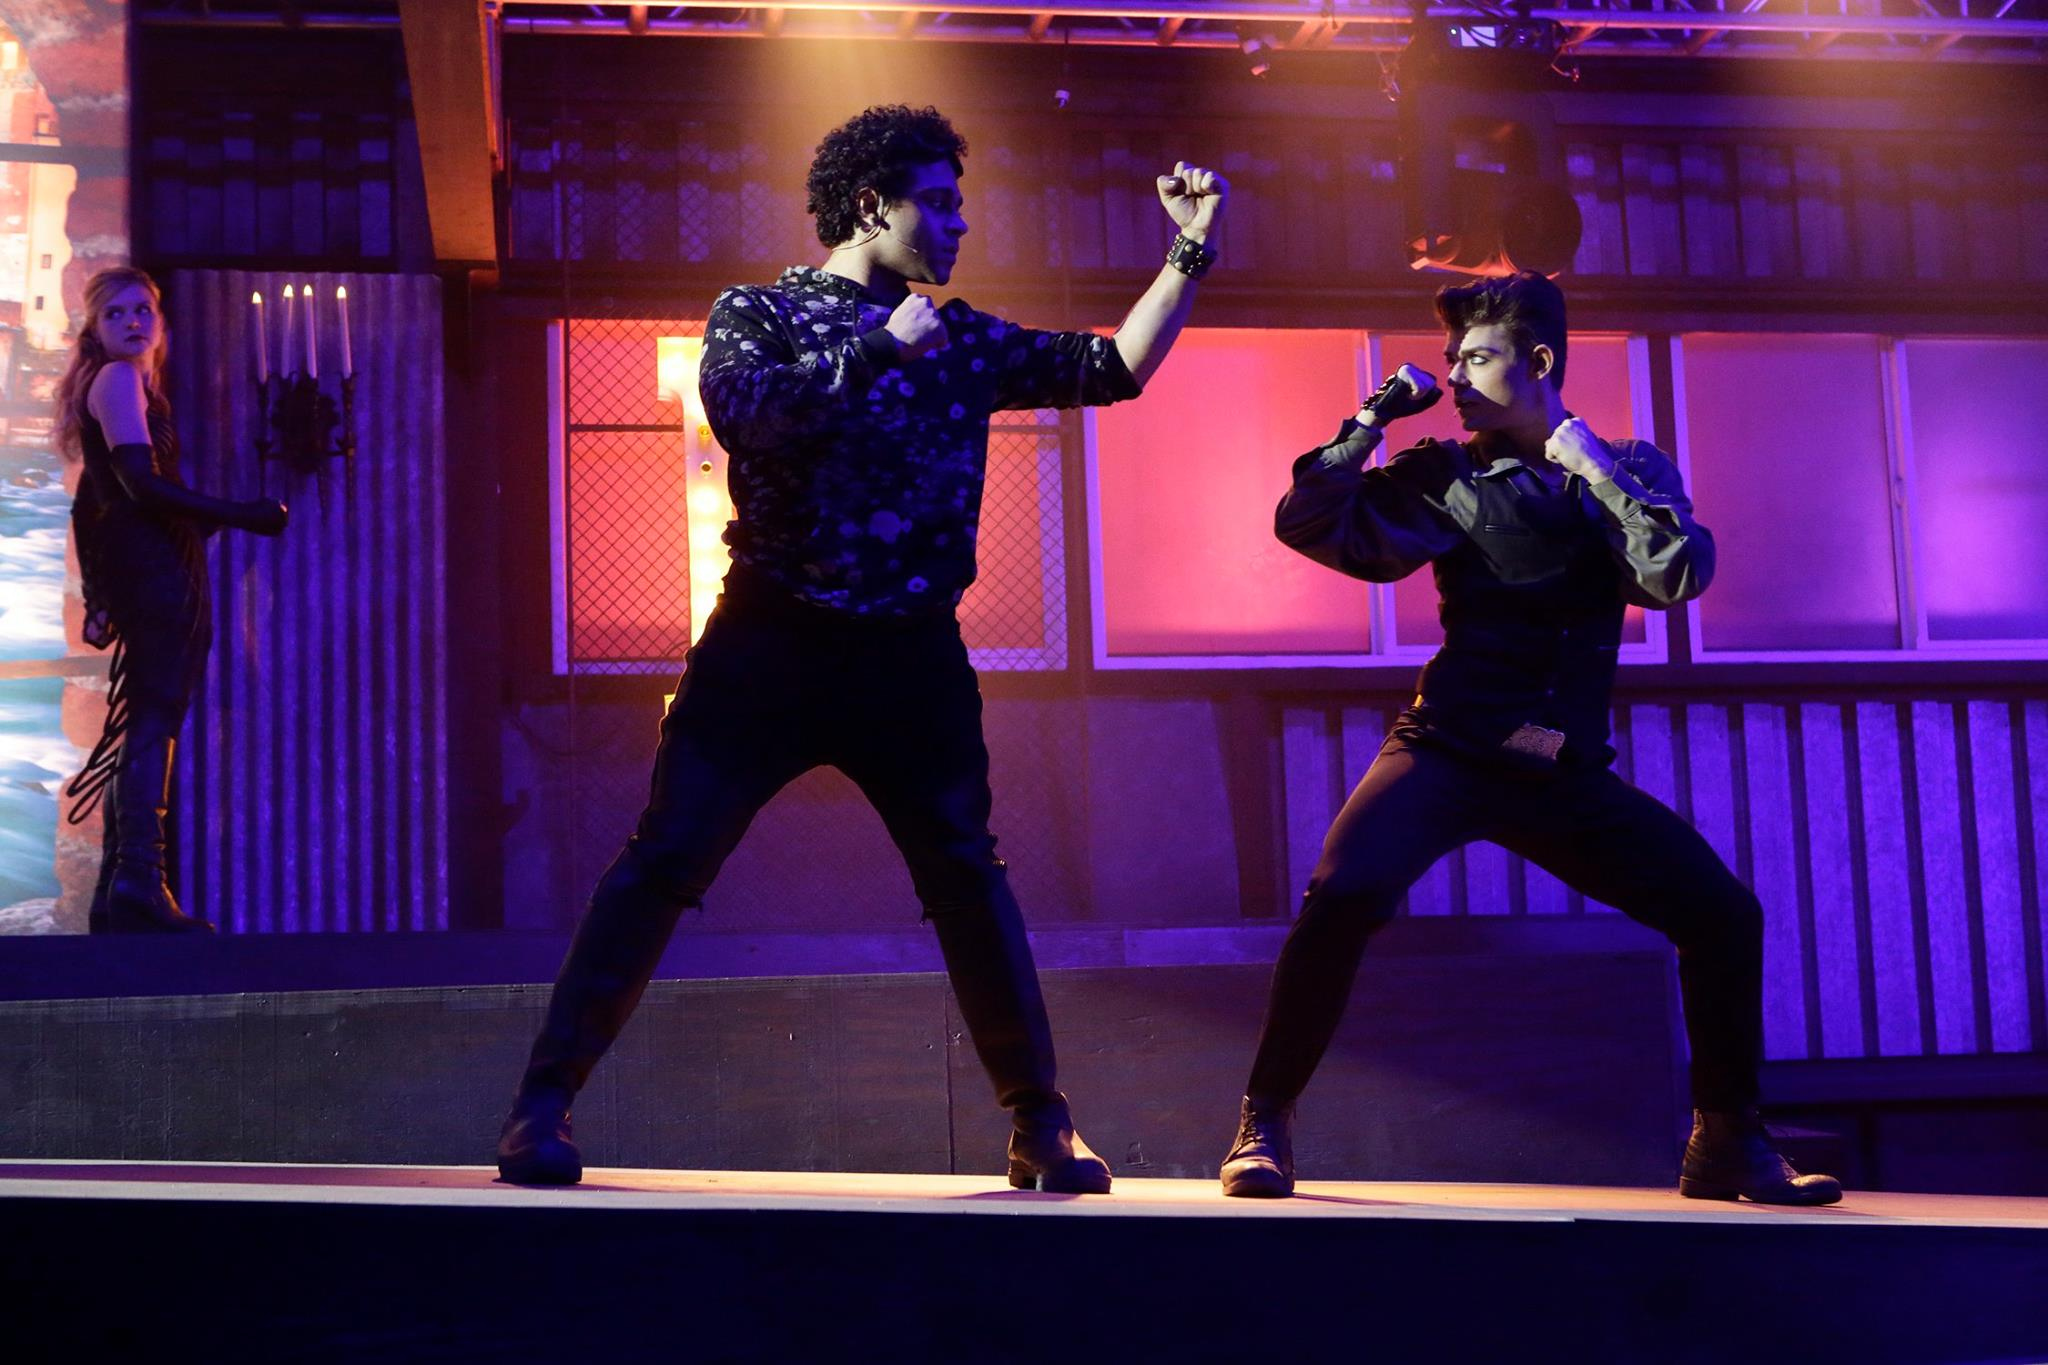 Tv-commercials-the-fosters-asher-entertainment-tv-show-dance-dancers-posing-fight-choreo-stage-set